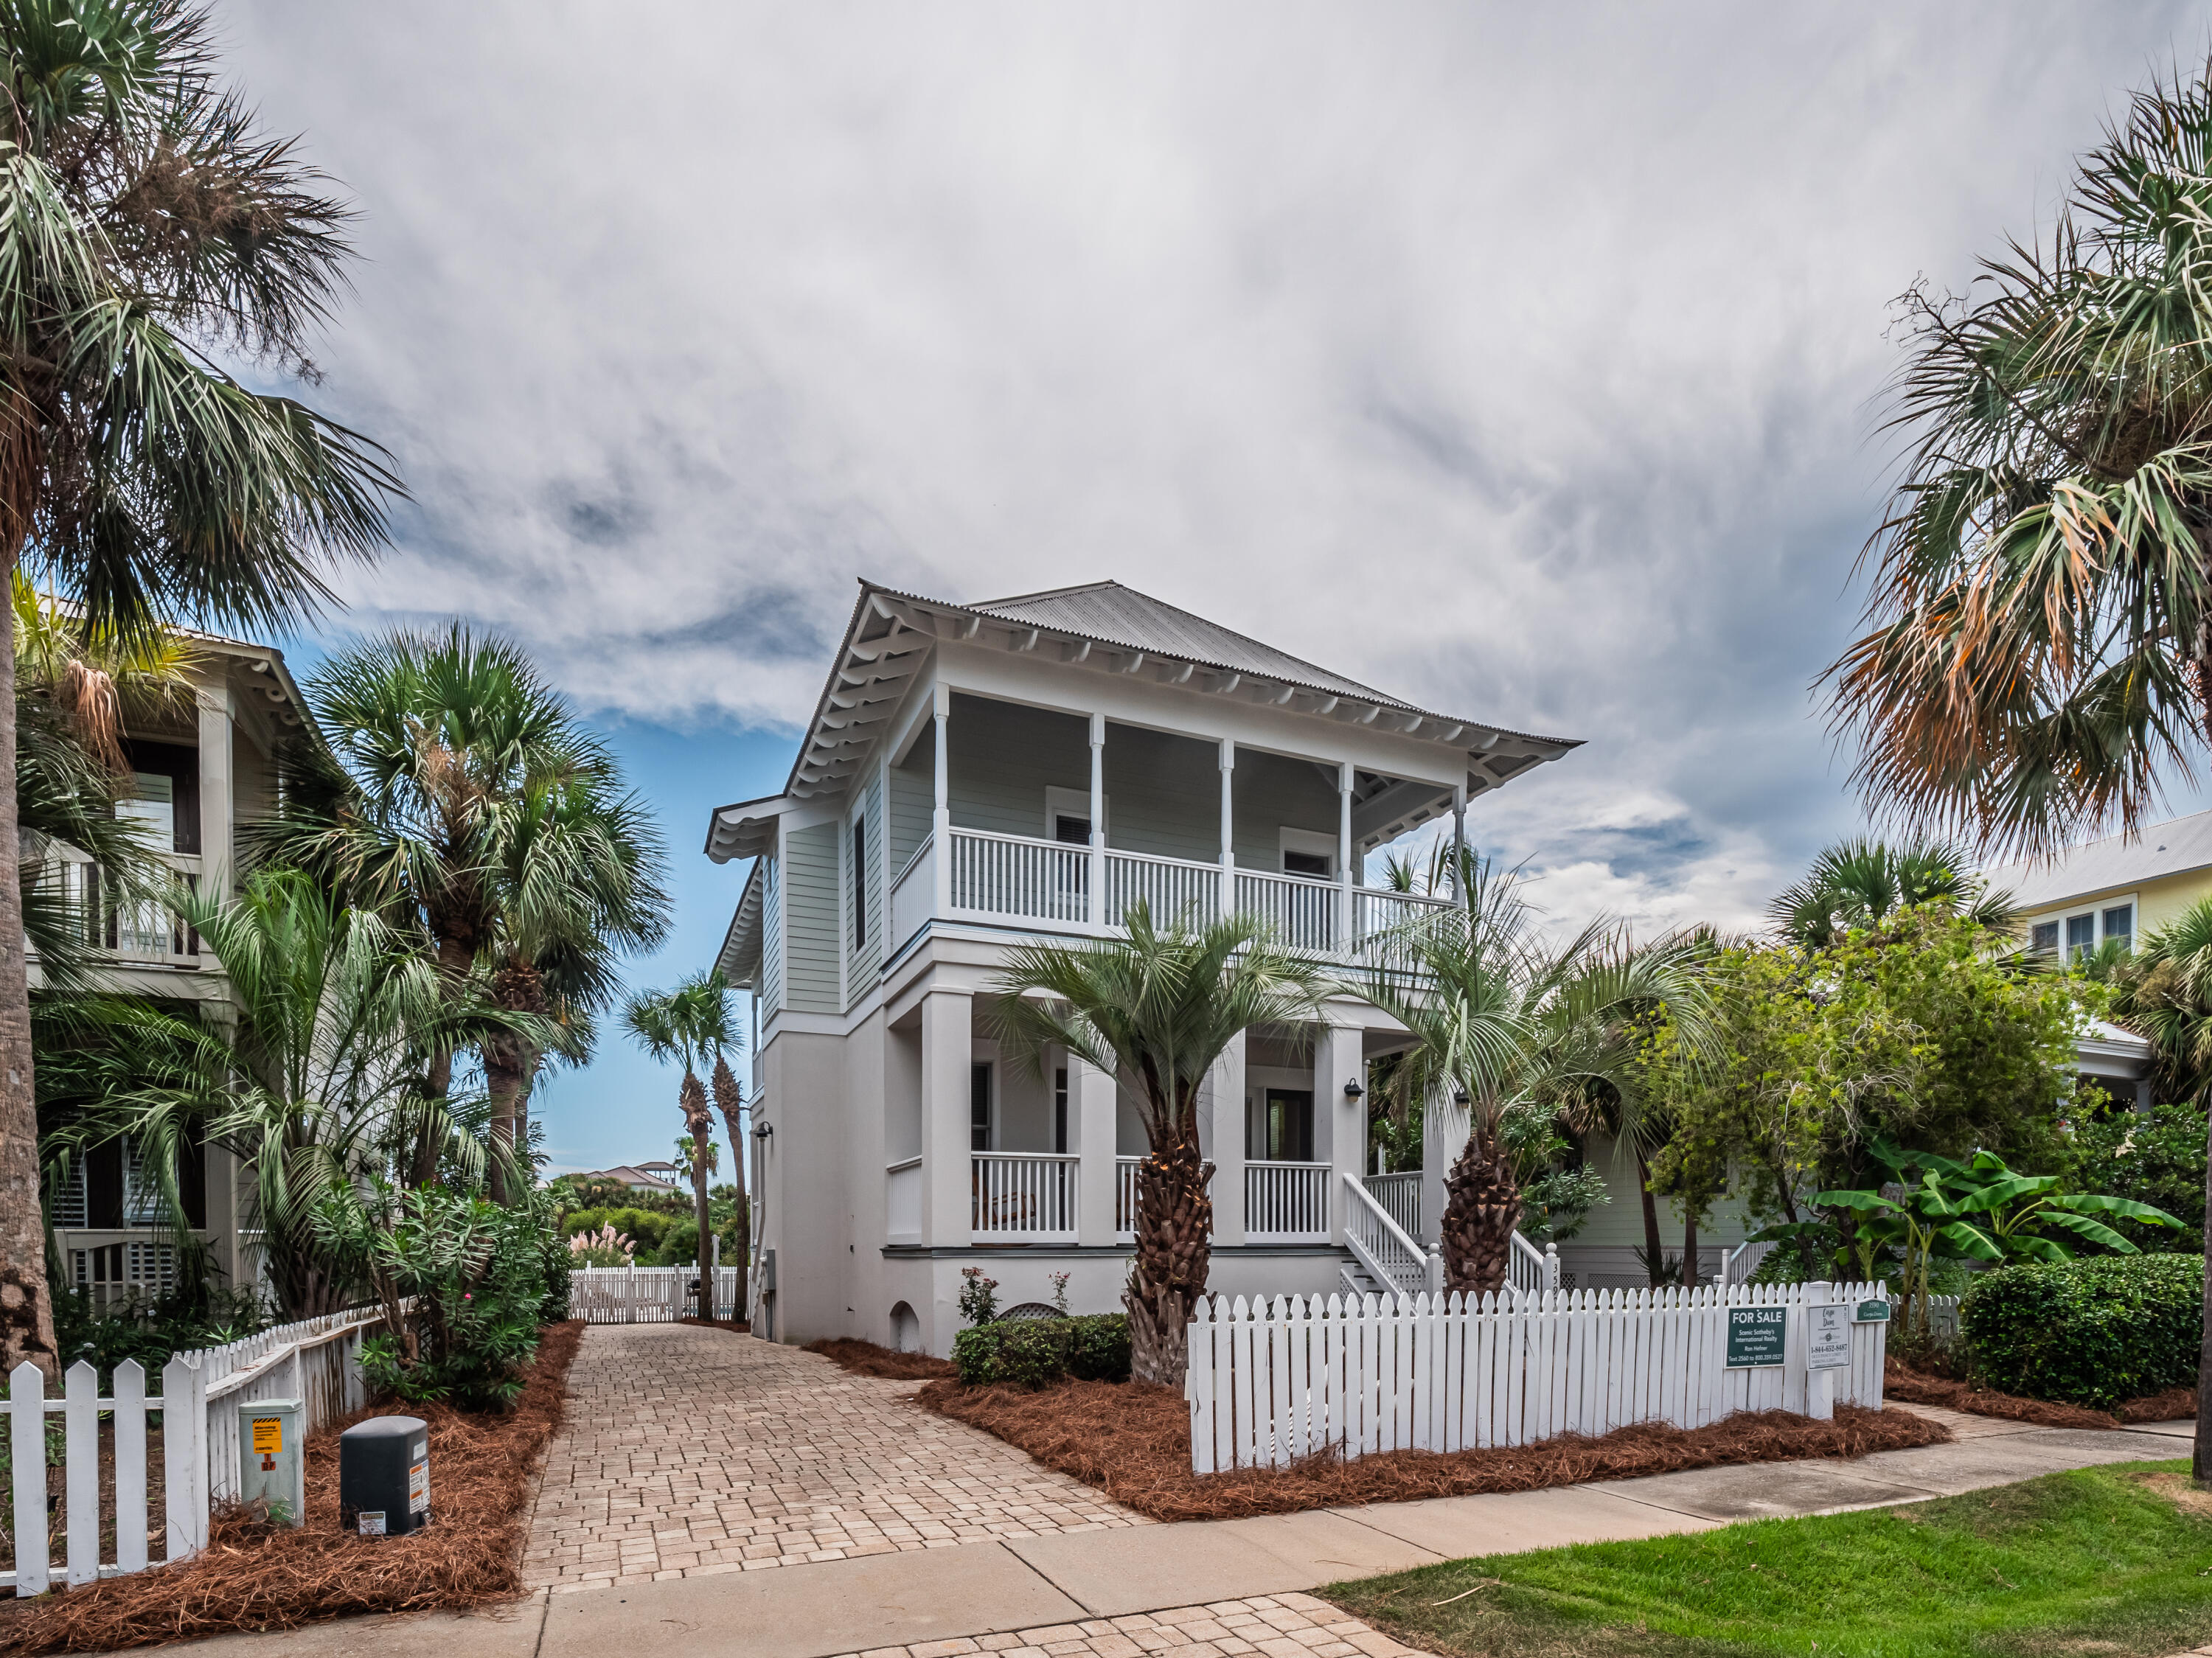 Under contract with a 24hr Kick Out Clause. Nestled into the quintessential resort community of Destin Point, this beautifully appointed four bedroom home offers a tranquil setting and unsurpassed amenities. Multiple levels of viewing decks gift both guests and residents with direct lake views, while quick access to the sugar sand beaches of Destin's East pass provides endless fun in the sun. Spaced over two levels with an oversized driveway for ample parking, Modern luxuries such as stainless appliances and slate countertops adorn the kitchen, providing an inspiring place for the culinary minded, while crisp wainscotting and a mesmerizing grid design ceiling in the living spaces offer custom touches sure to delight. A private lakefront pool offers an additional locale for relaxation and entertainment, perfect for sipping your evening cocktails while overlooking the crystalline community lake.   Located close to shopping and top area restaurants, this gated resort community near Destin Harbor provides an unparalleled ownership experience thanks to multiple community pools, tennis courts and a shuffleboard court.